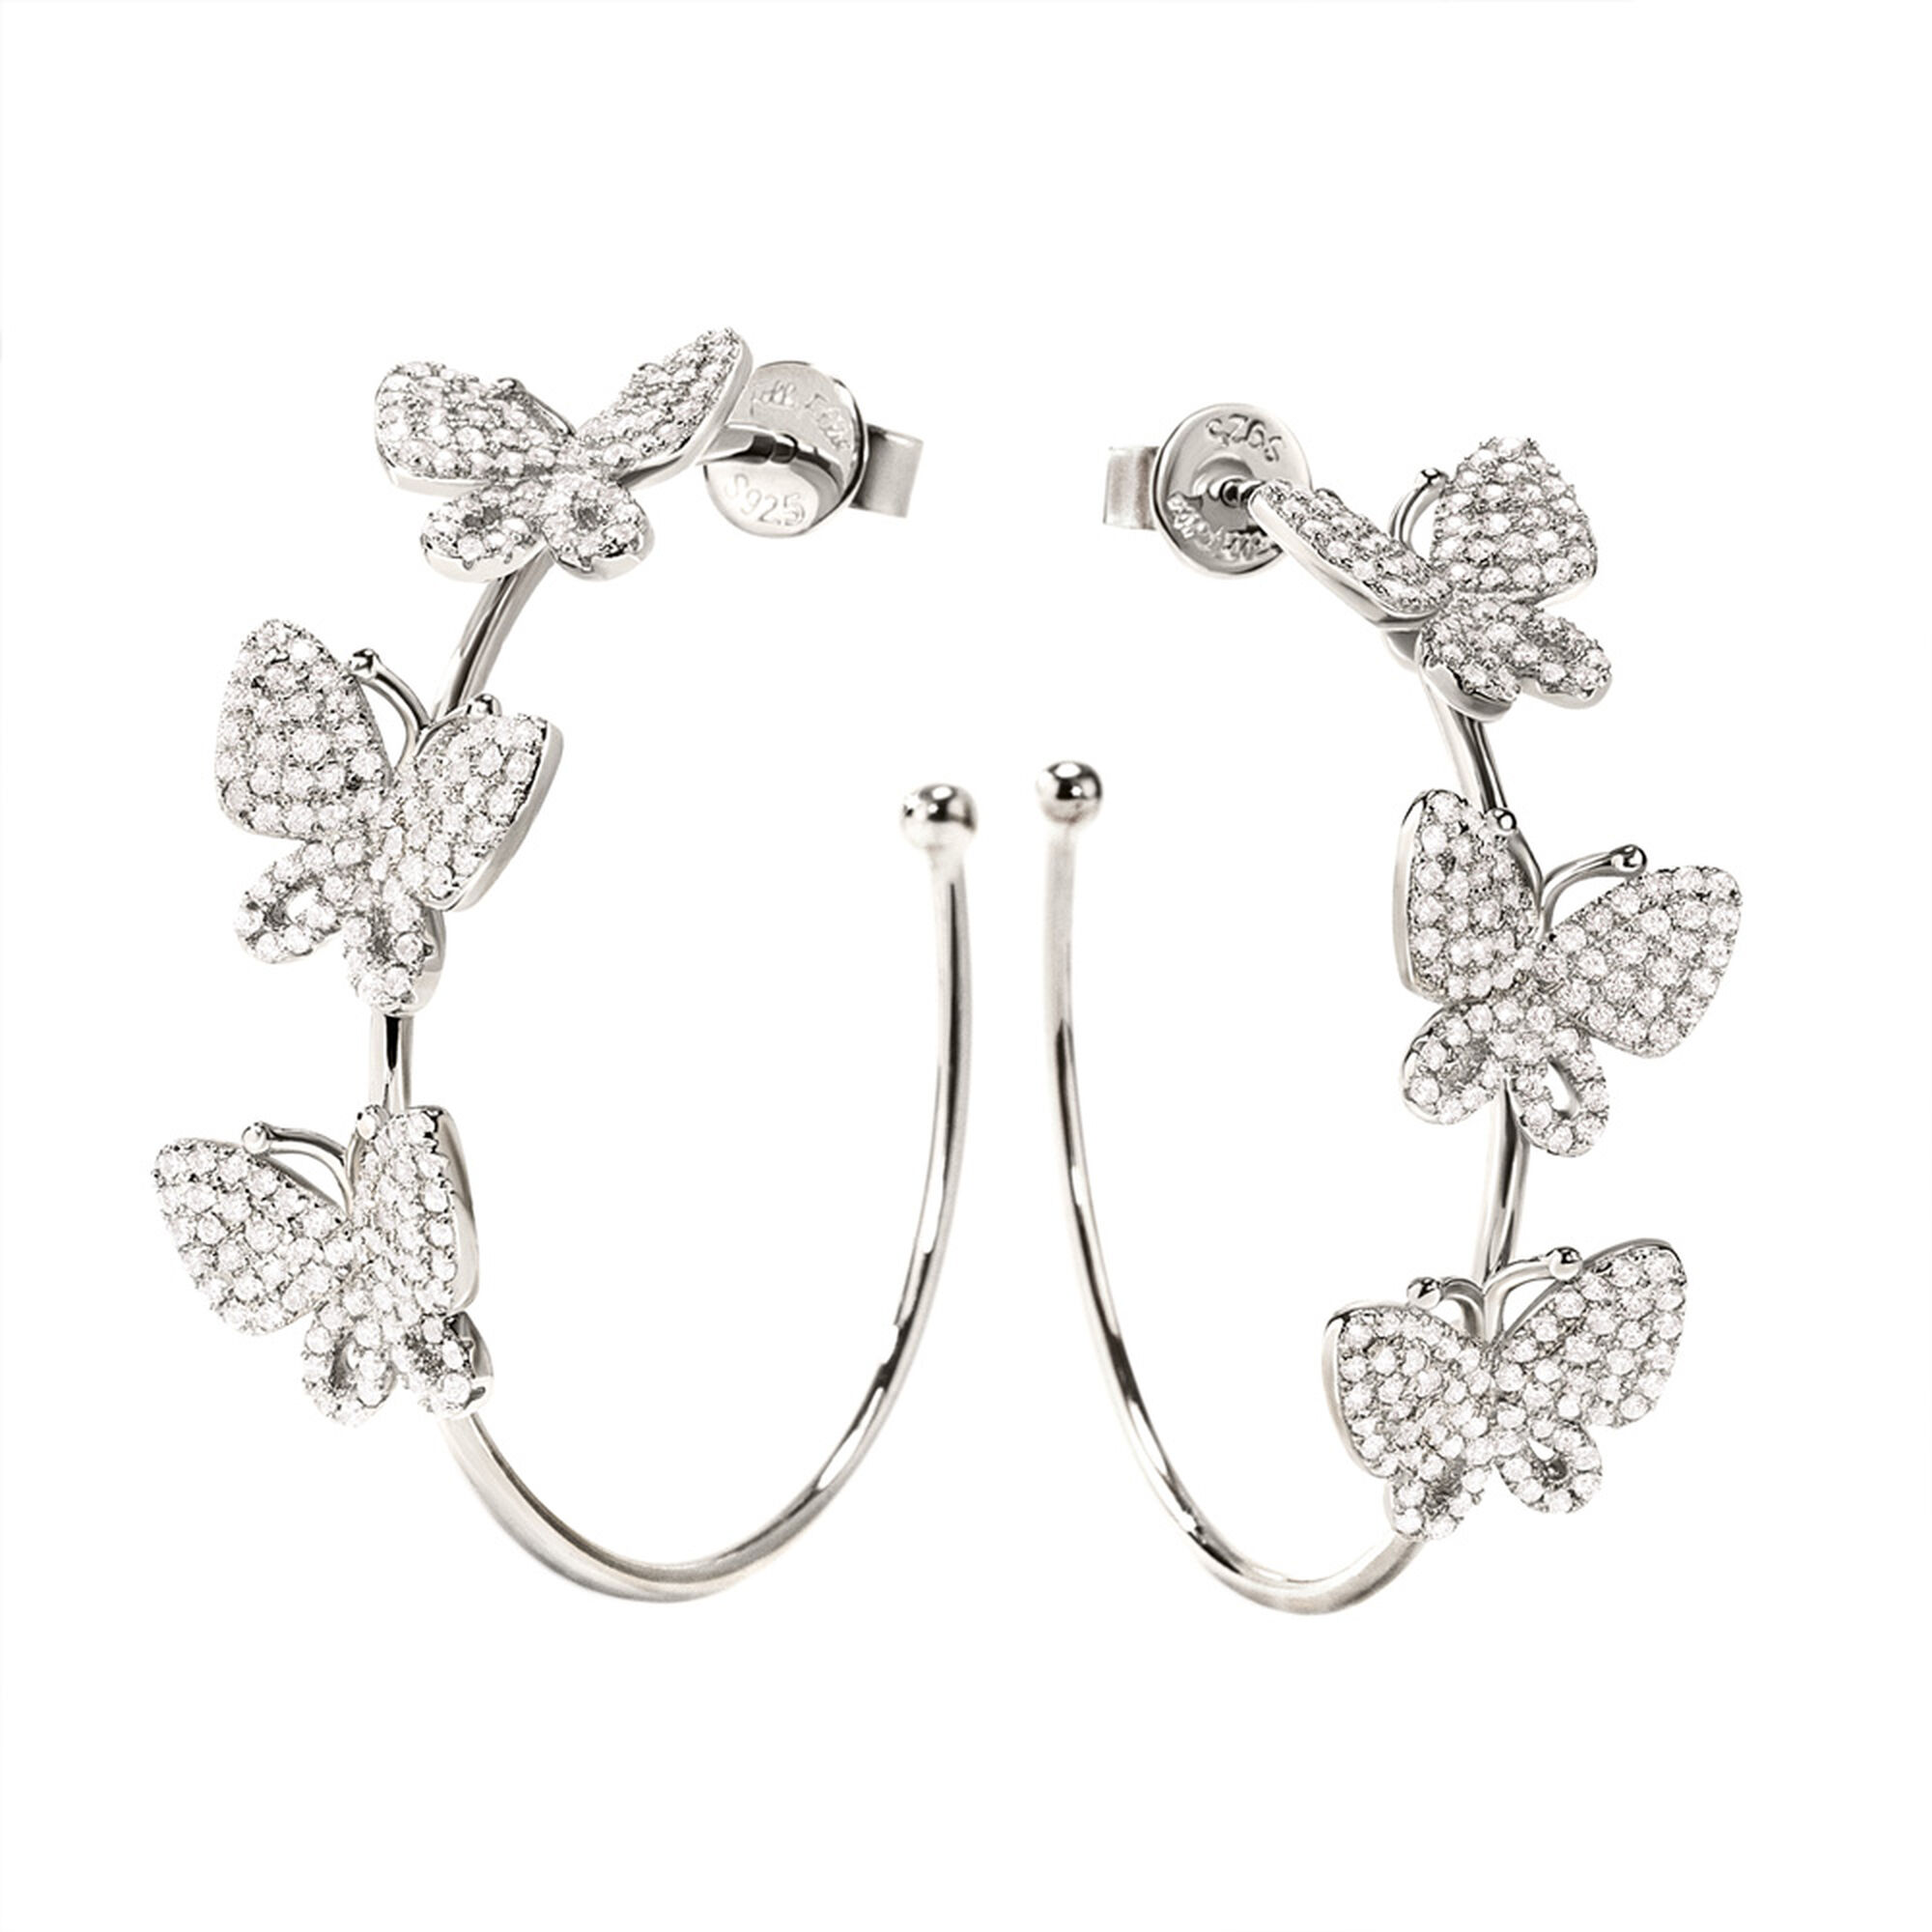 Folli Follie Wonderfly Rhodium Plated Hoop Earrings 3E17S103C